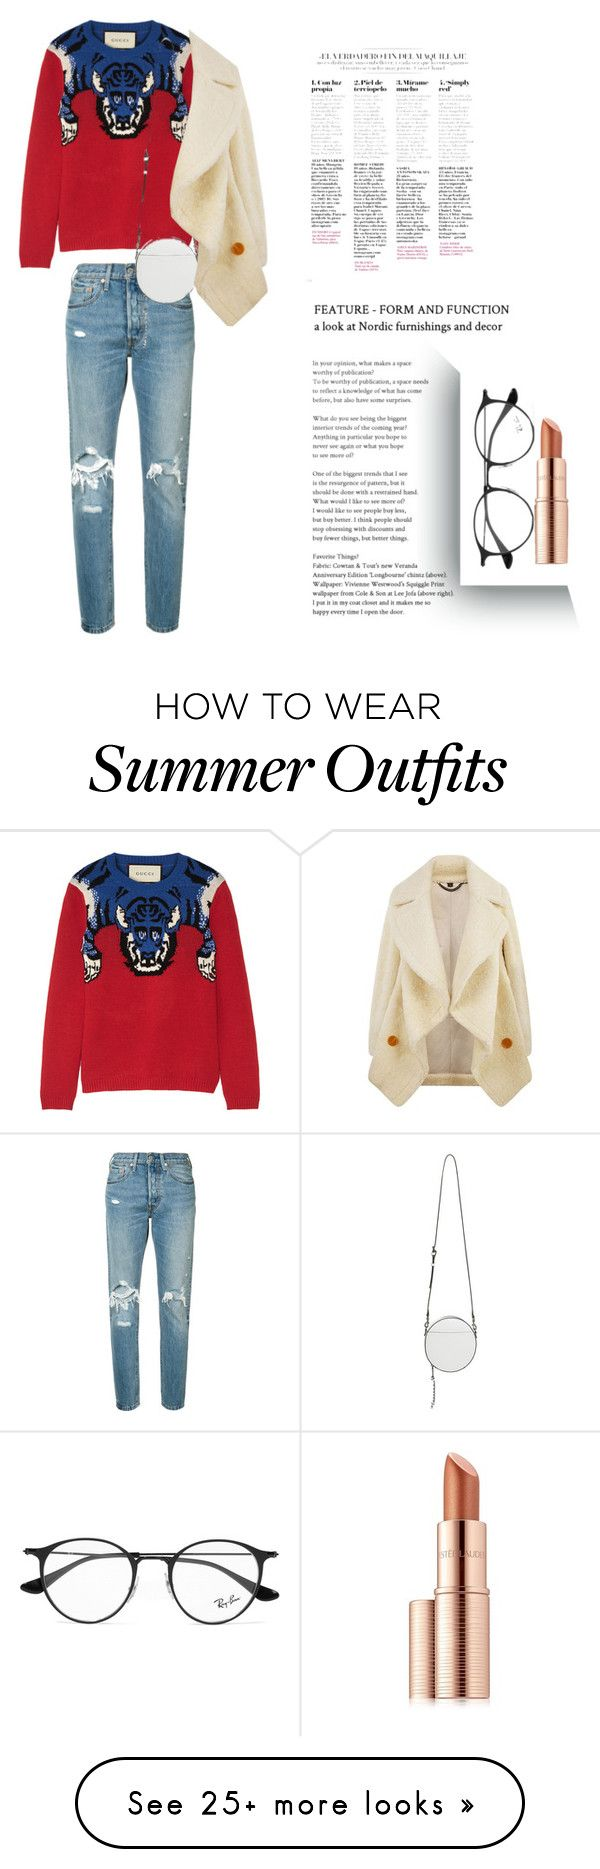 536324f957c7 Summer Outfits